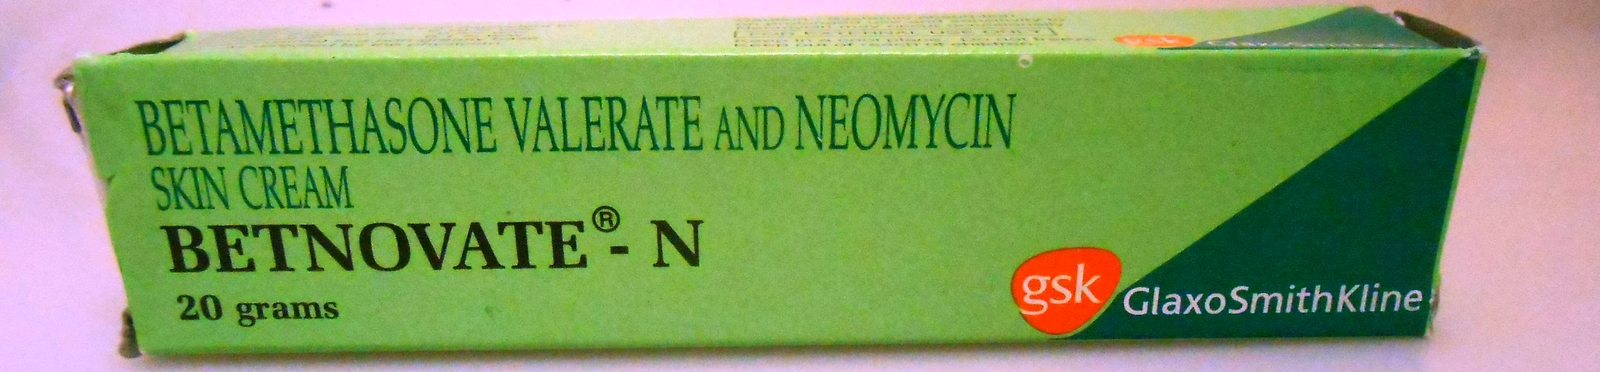 Betnovate - N 20grams Betamethasone Valerate & Neomycin